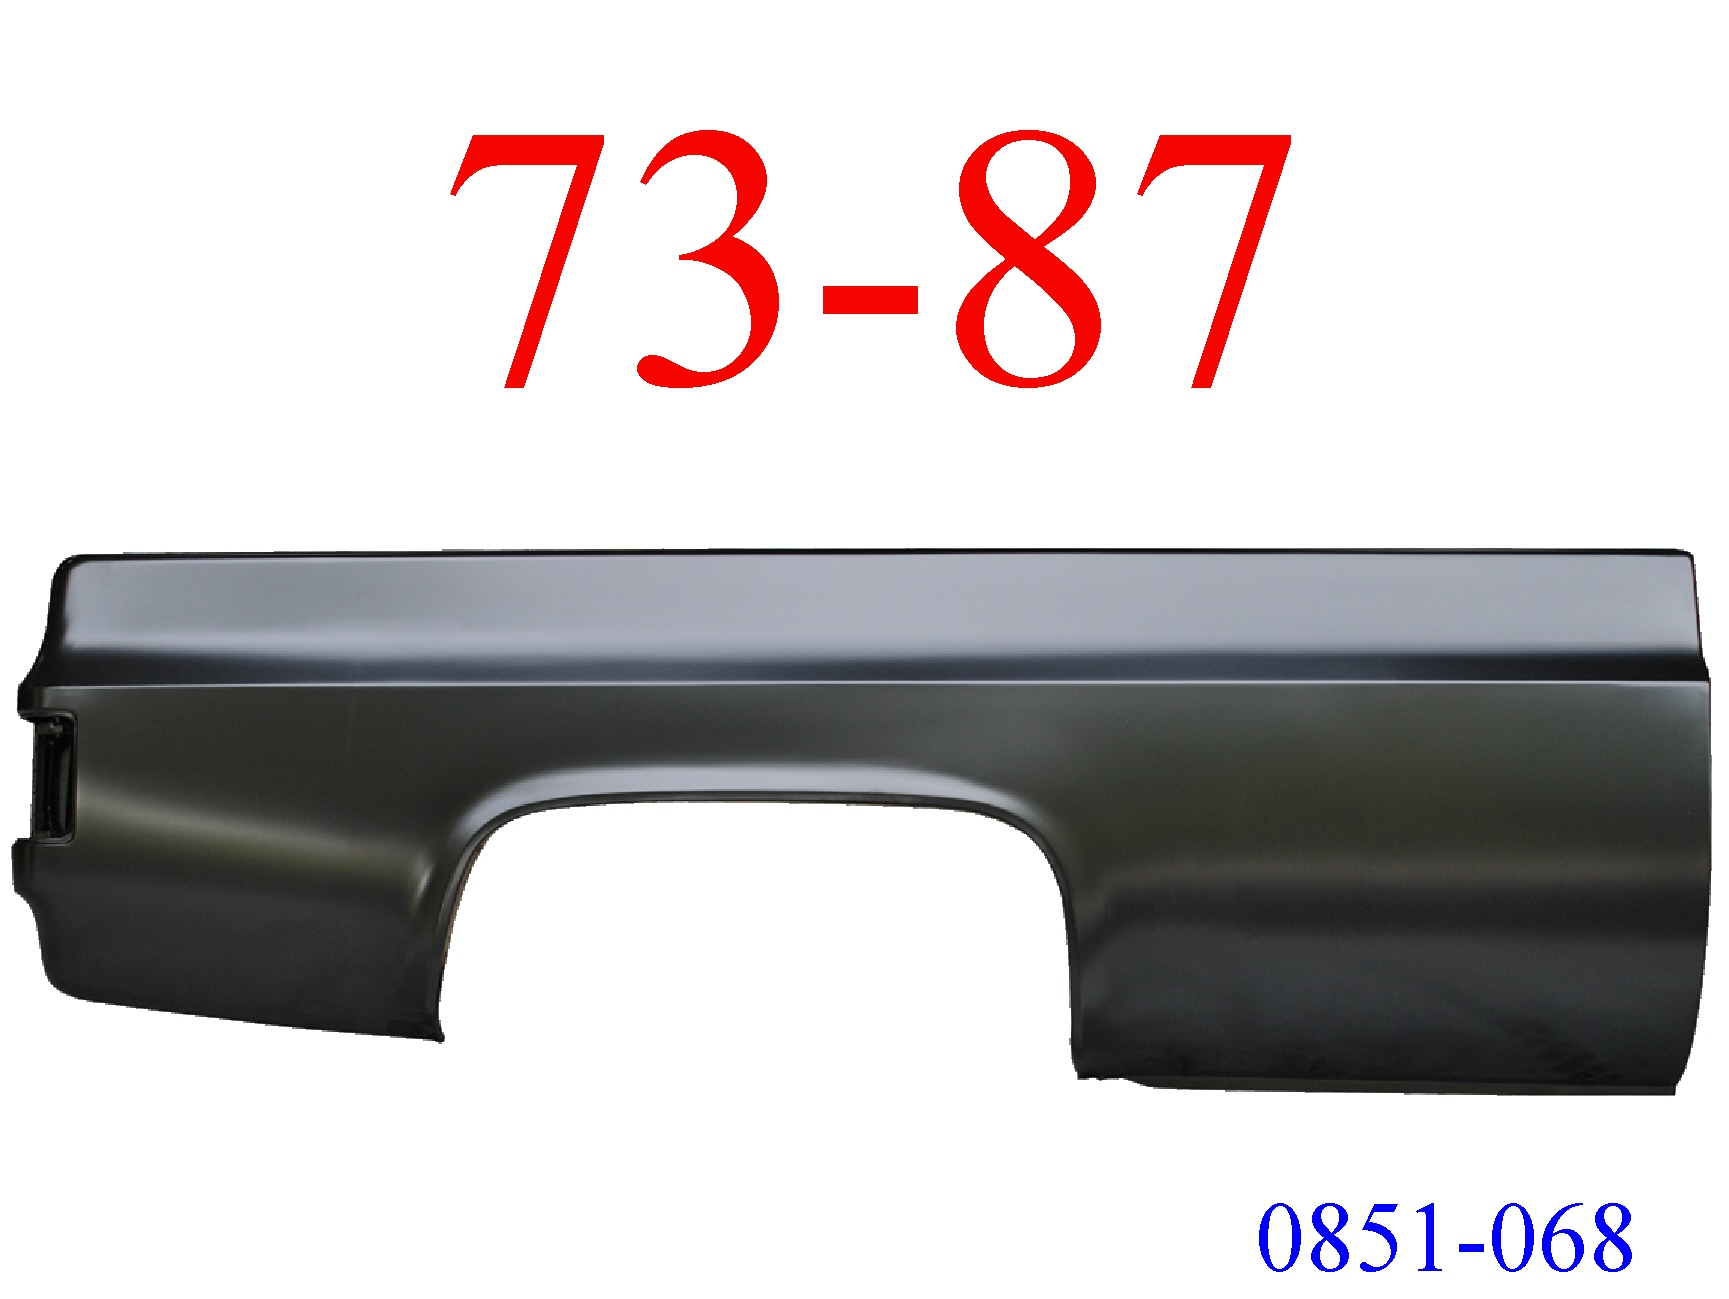 73-87 Chevy Truck 8' Right Bed Side No Fuel Hole 0851-068